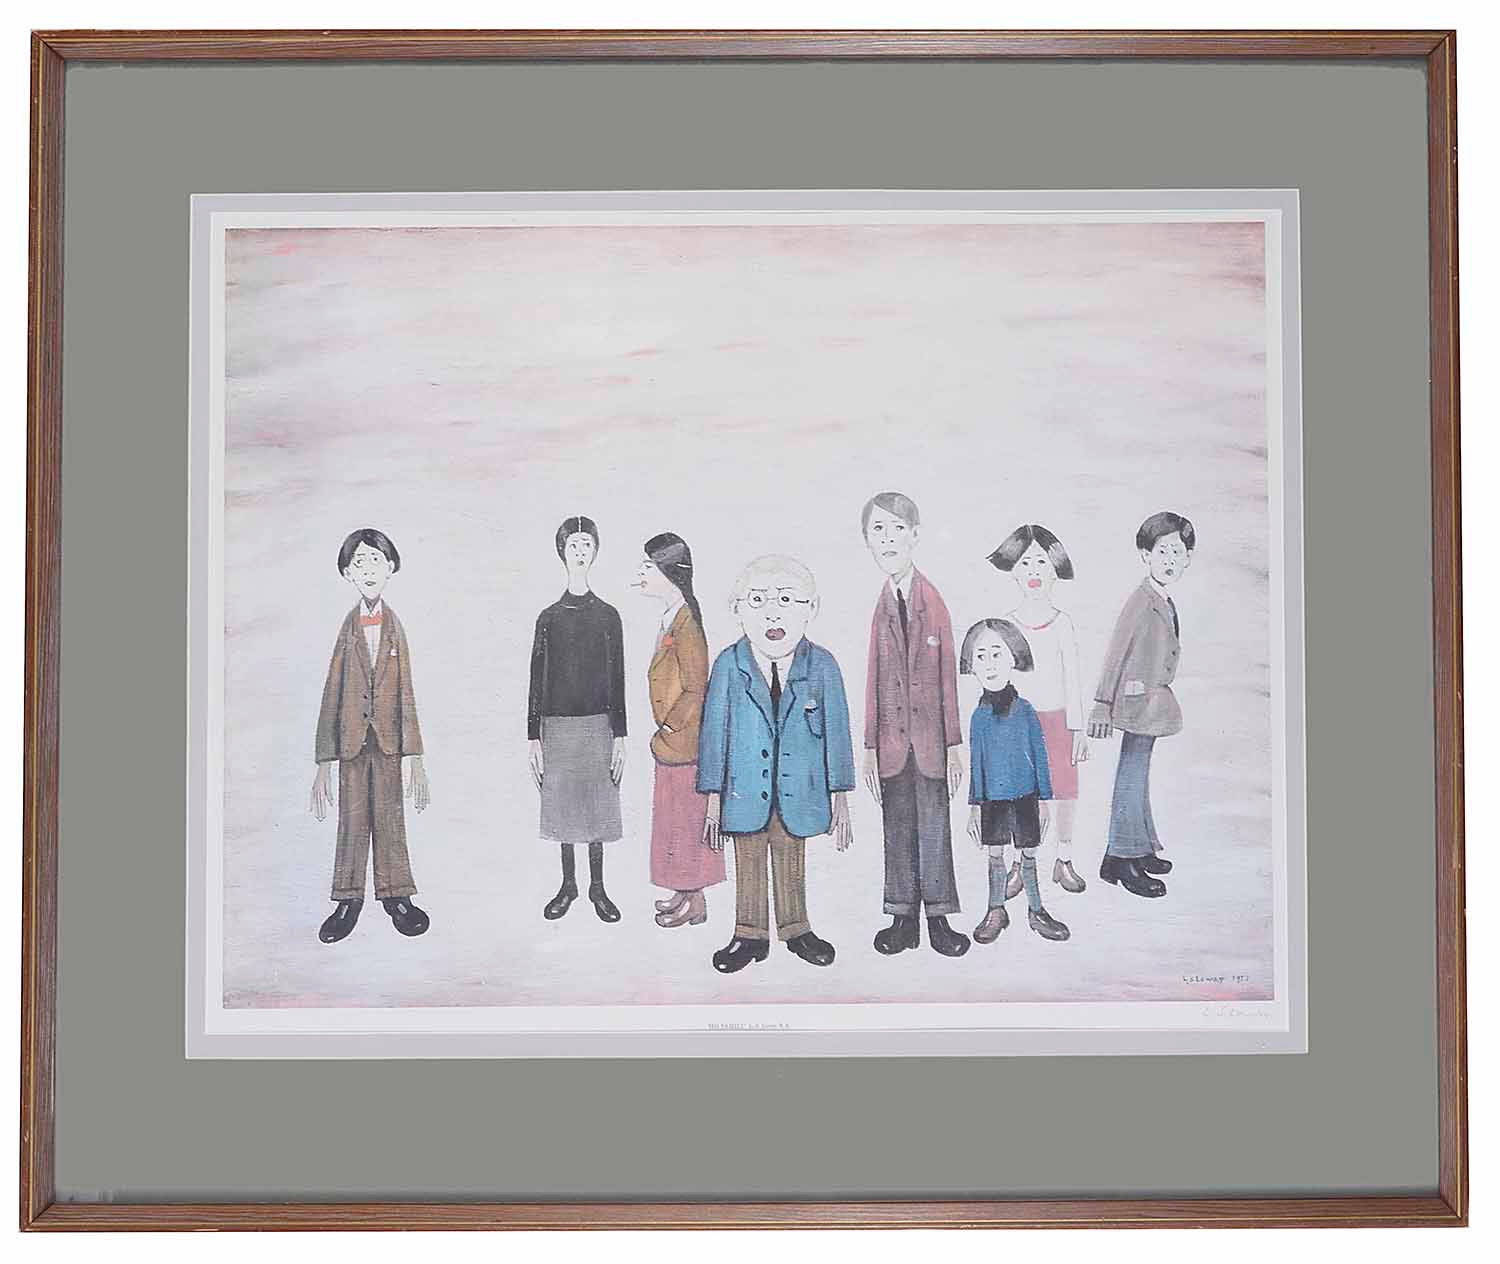 Lot 52 - Laurence S Lowry, RBA, RA, (Brit., 1887 - 1976) 'His Family', print